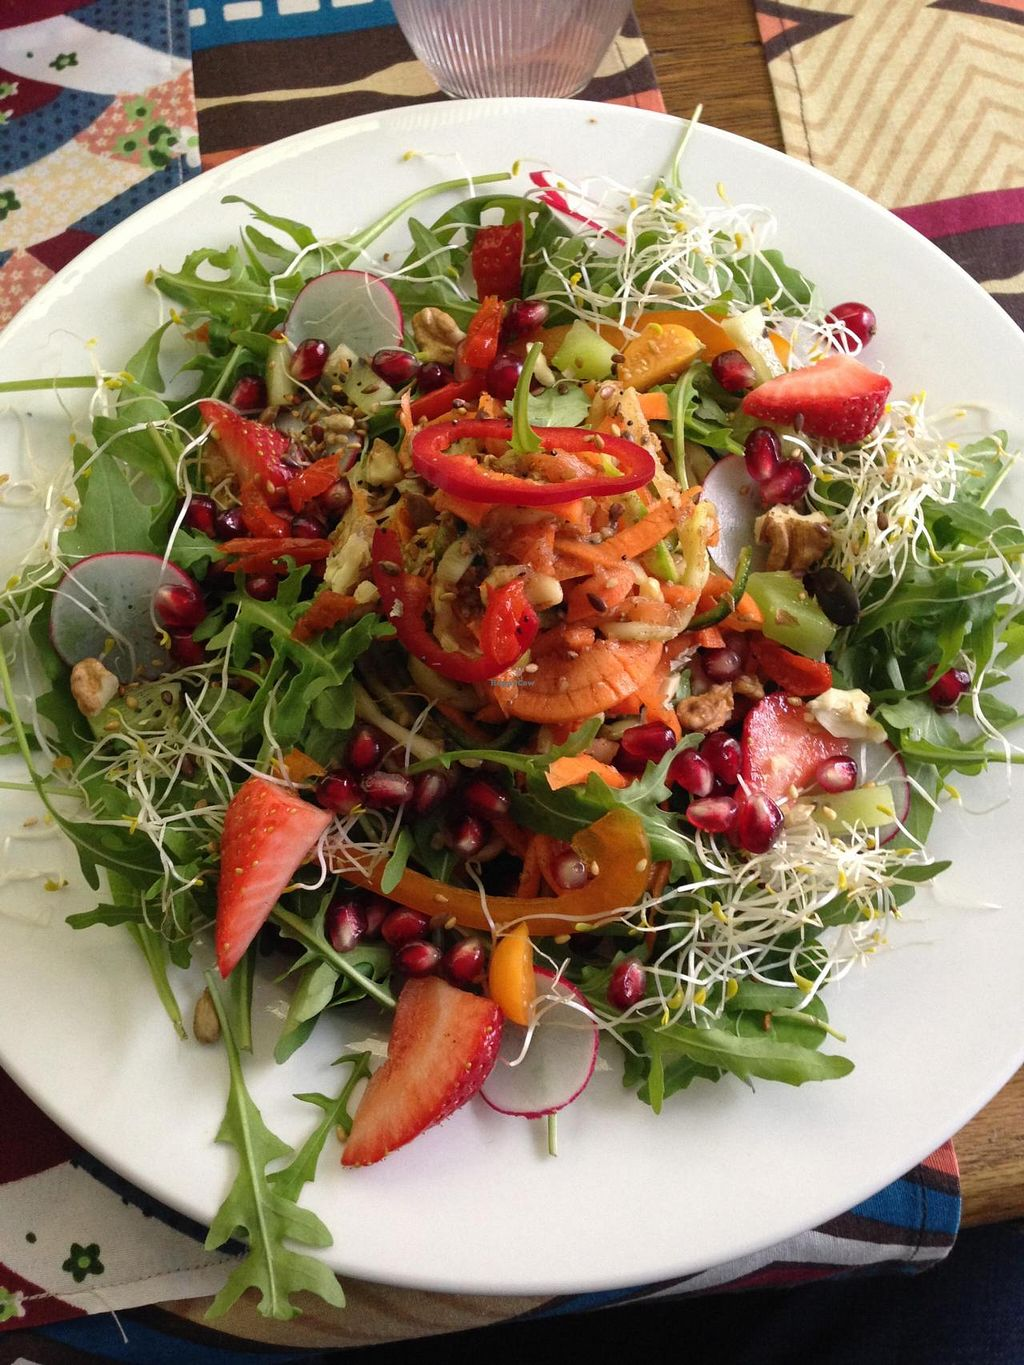 """Photo of Izibiliboco  by <a href=""""/members/profile/DavidLoos"""">DavidLoos</a> <br/>nice raw vegan dish (watch out viniger) <br/> May 10, 2014  - <a href='/contact/abuse/image/23931/69758'>Report</a>"""